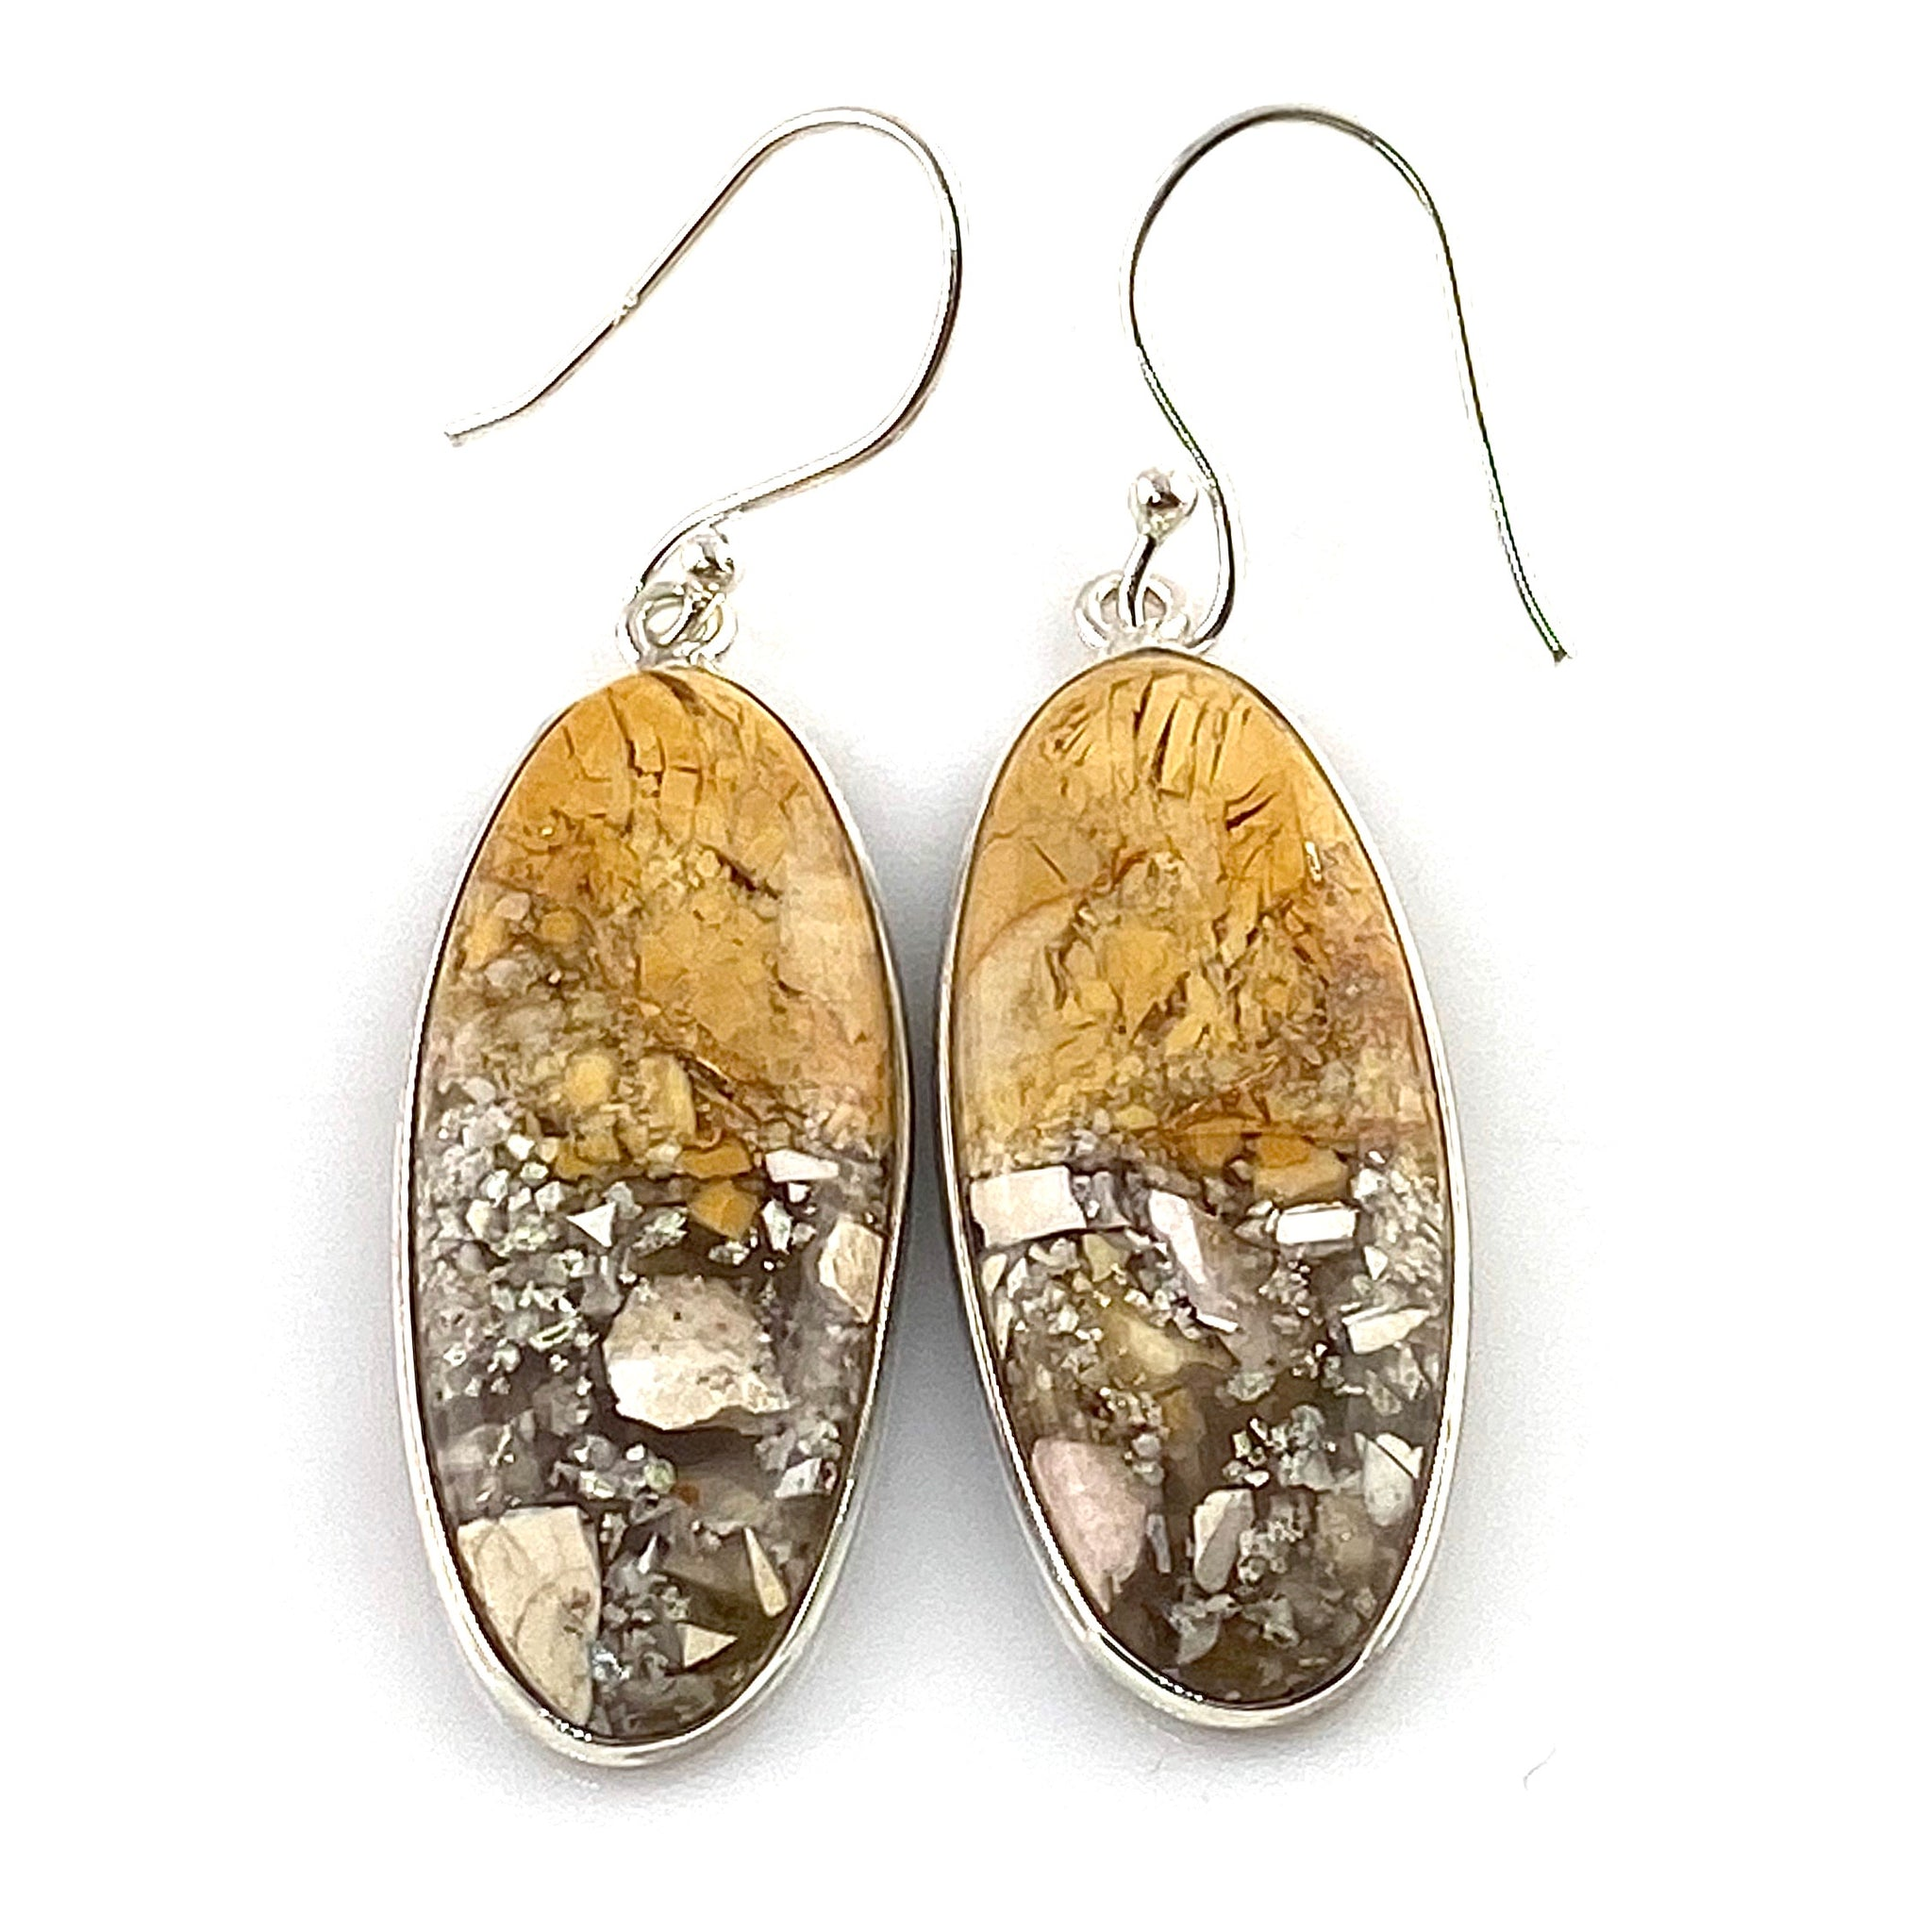 Australian Brecciated Mooakite Sterling Silver Earrings